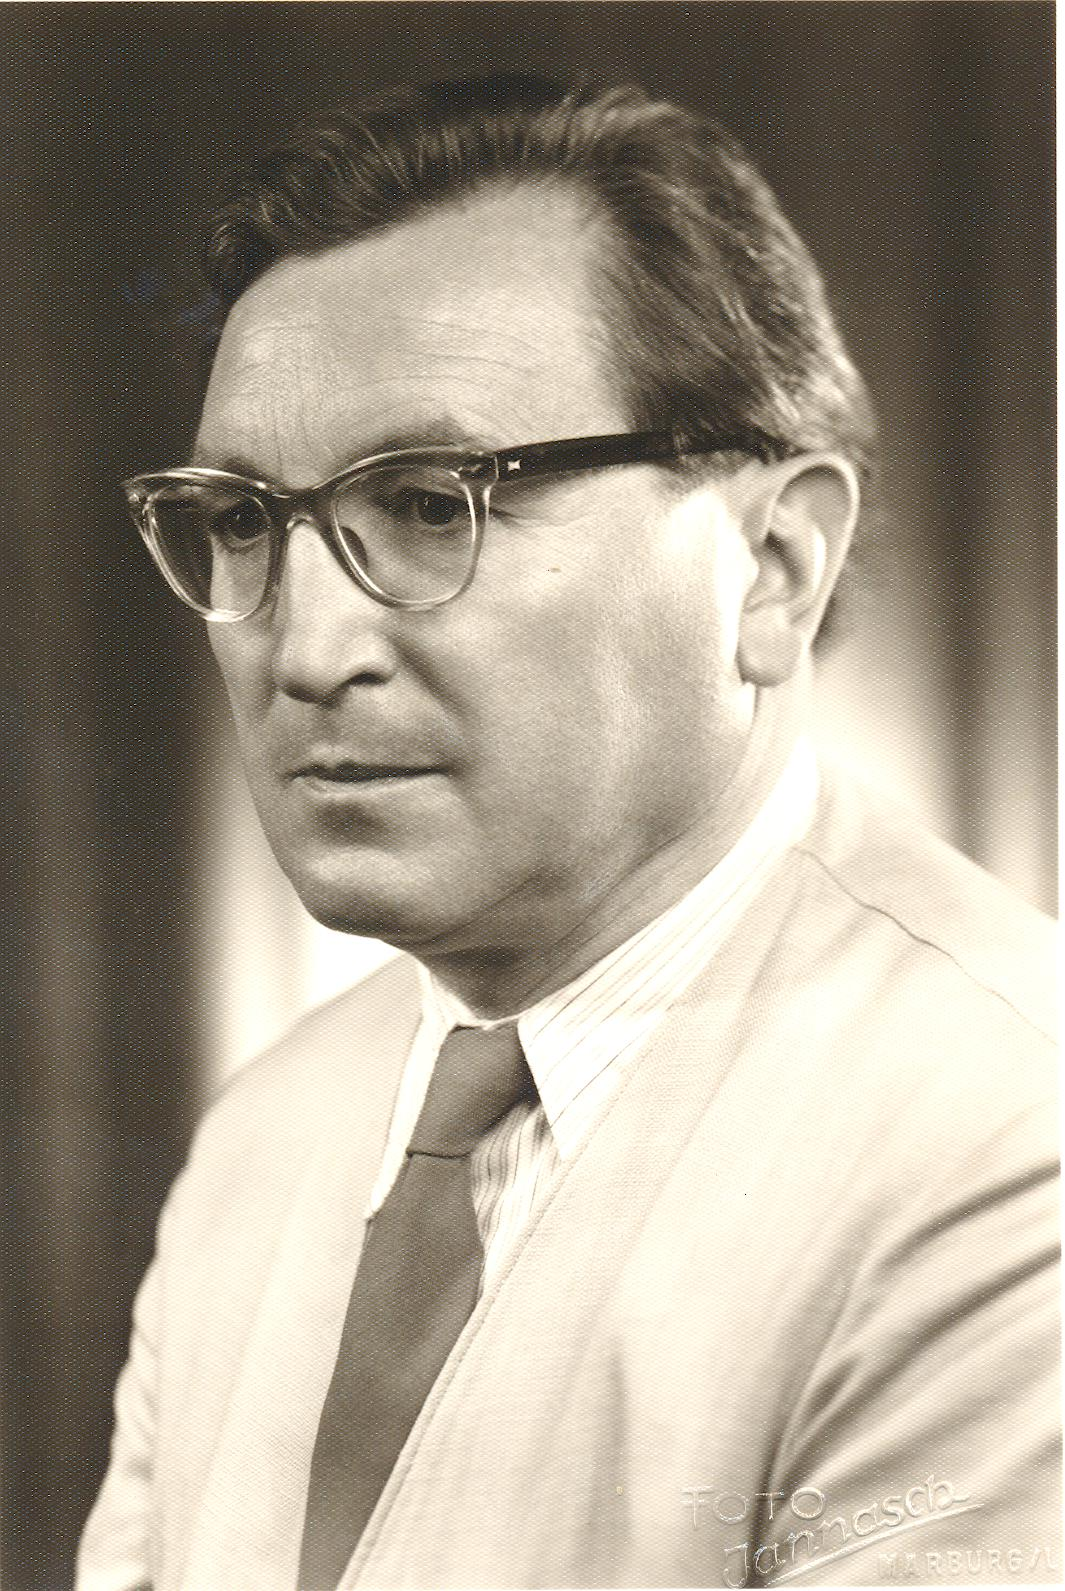 VII. Internationaler Imago Mundi-Kongress 1978, Innsbruck, Prof. DDr. Ernst Benz